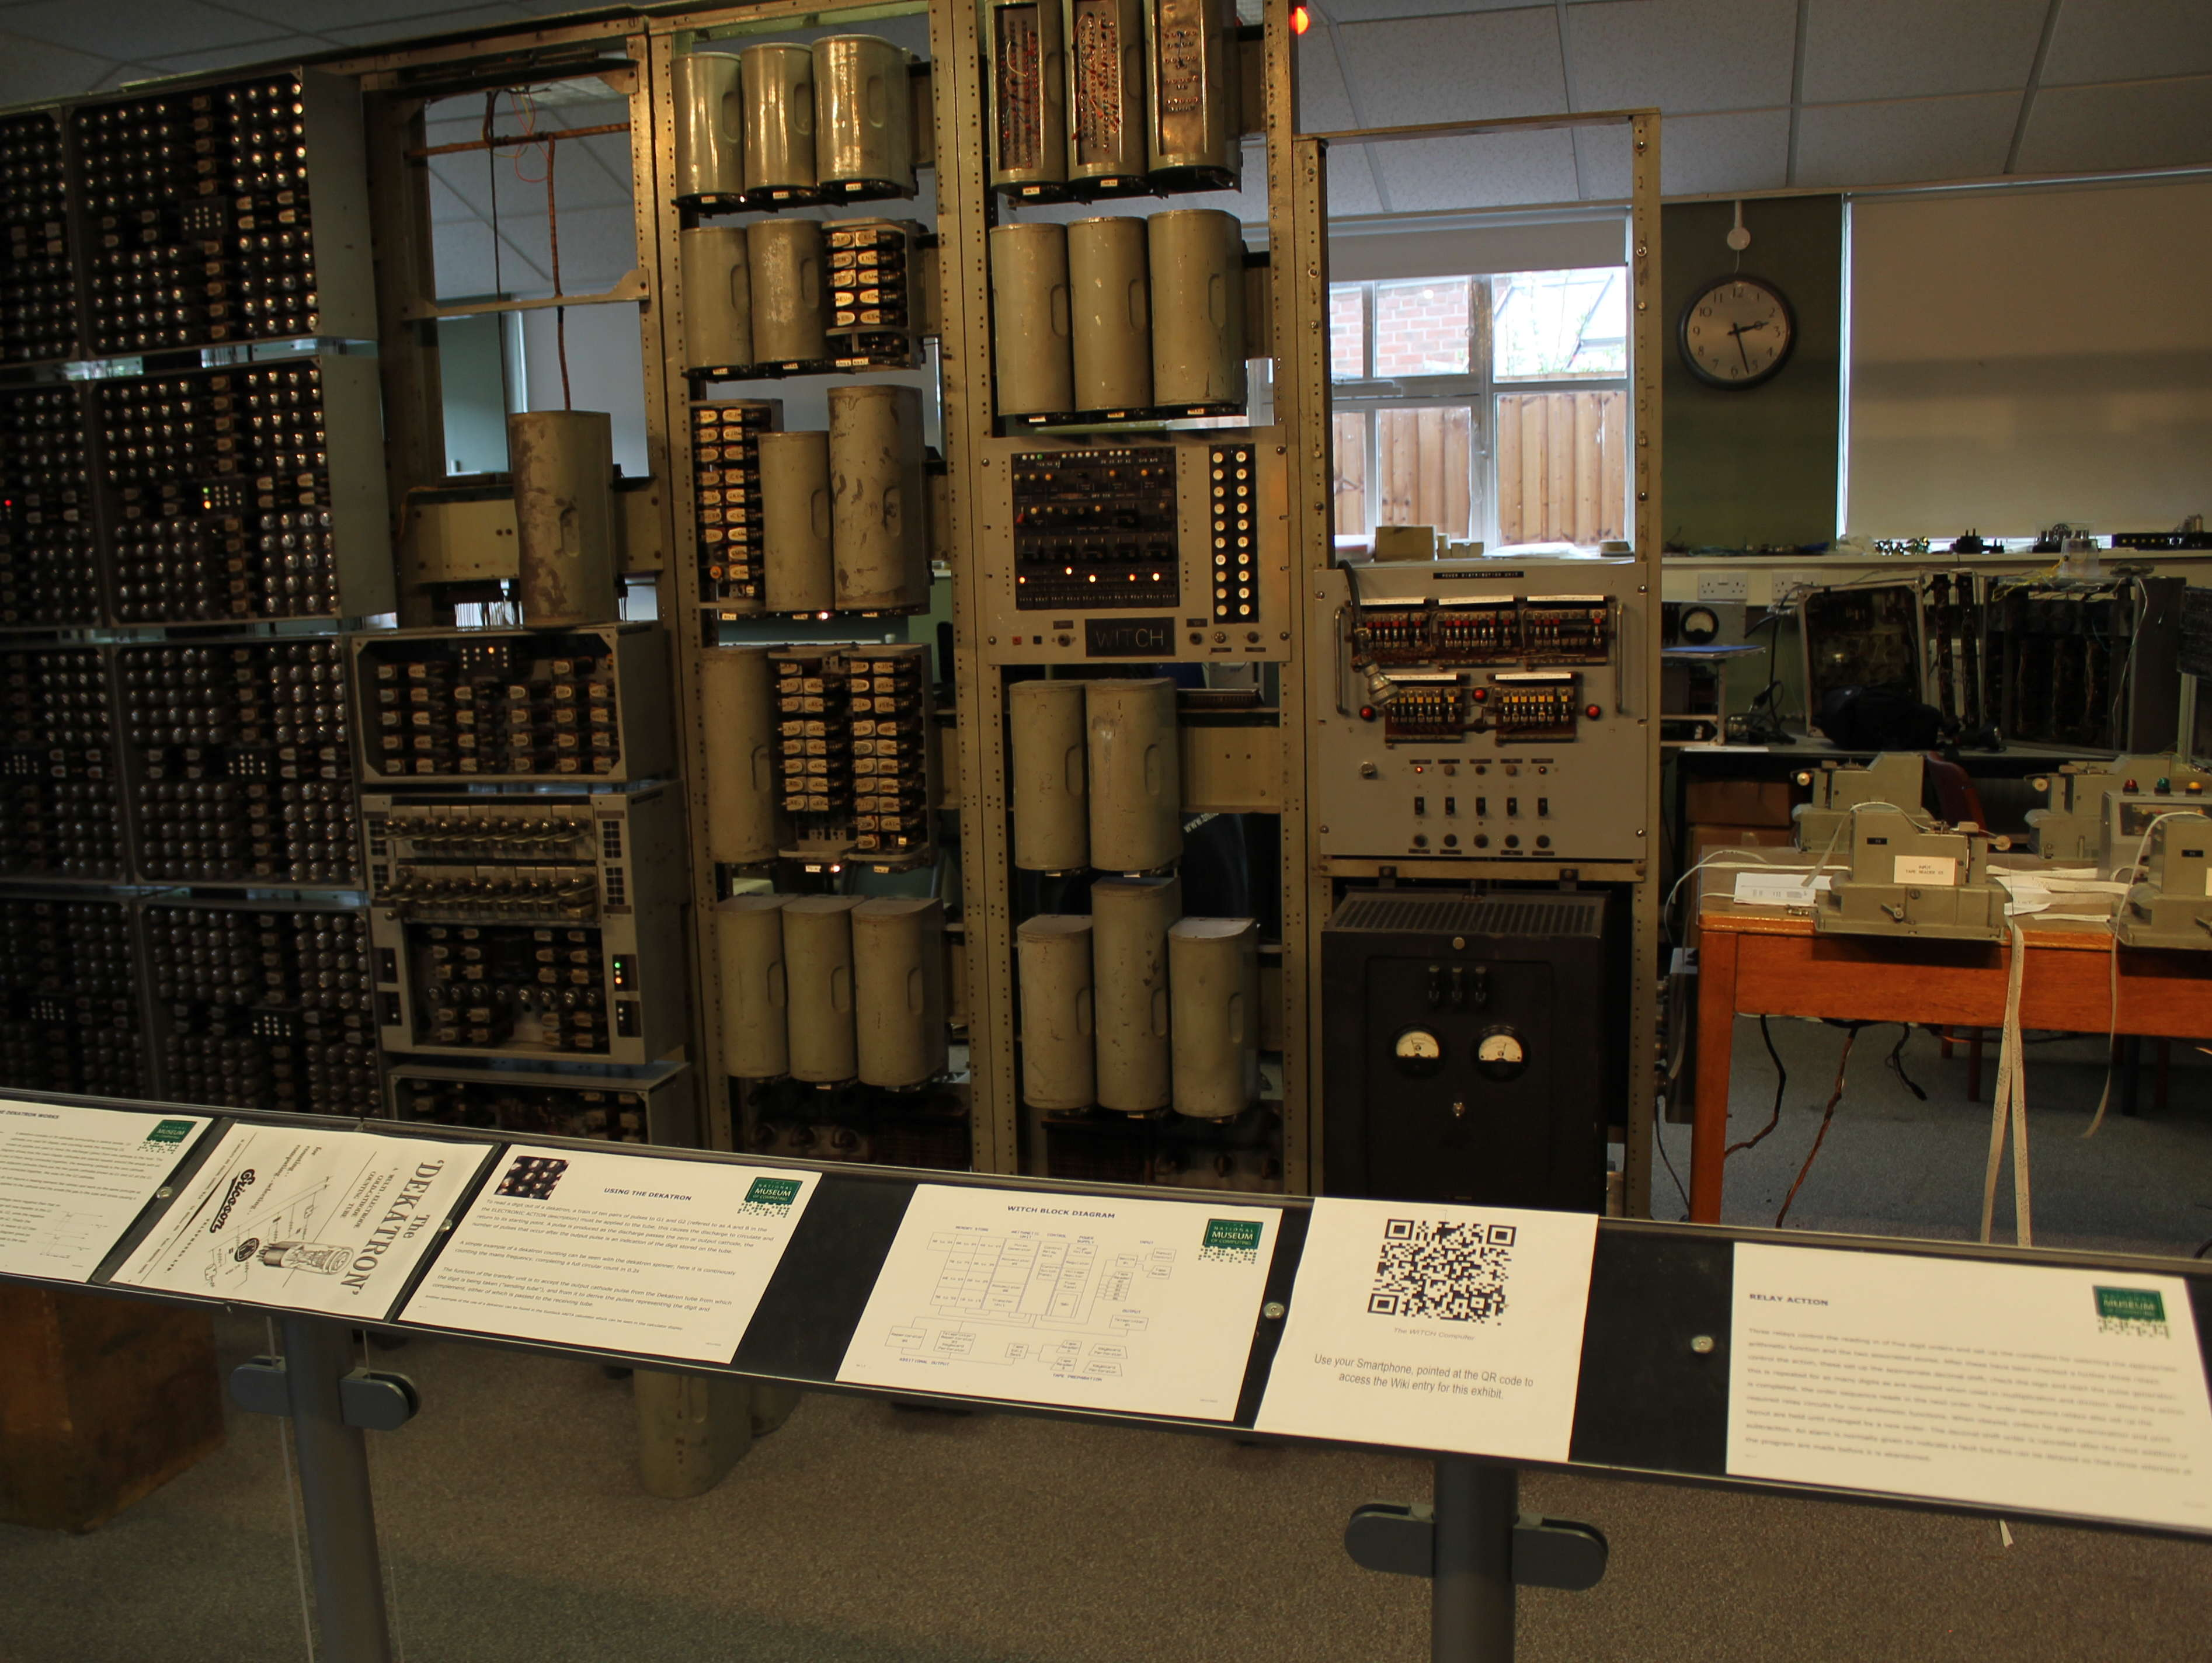 Reasons to wend your way in Wiltshire, England - Museum of Computing